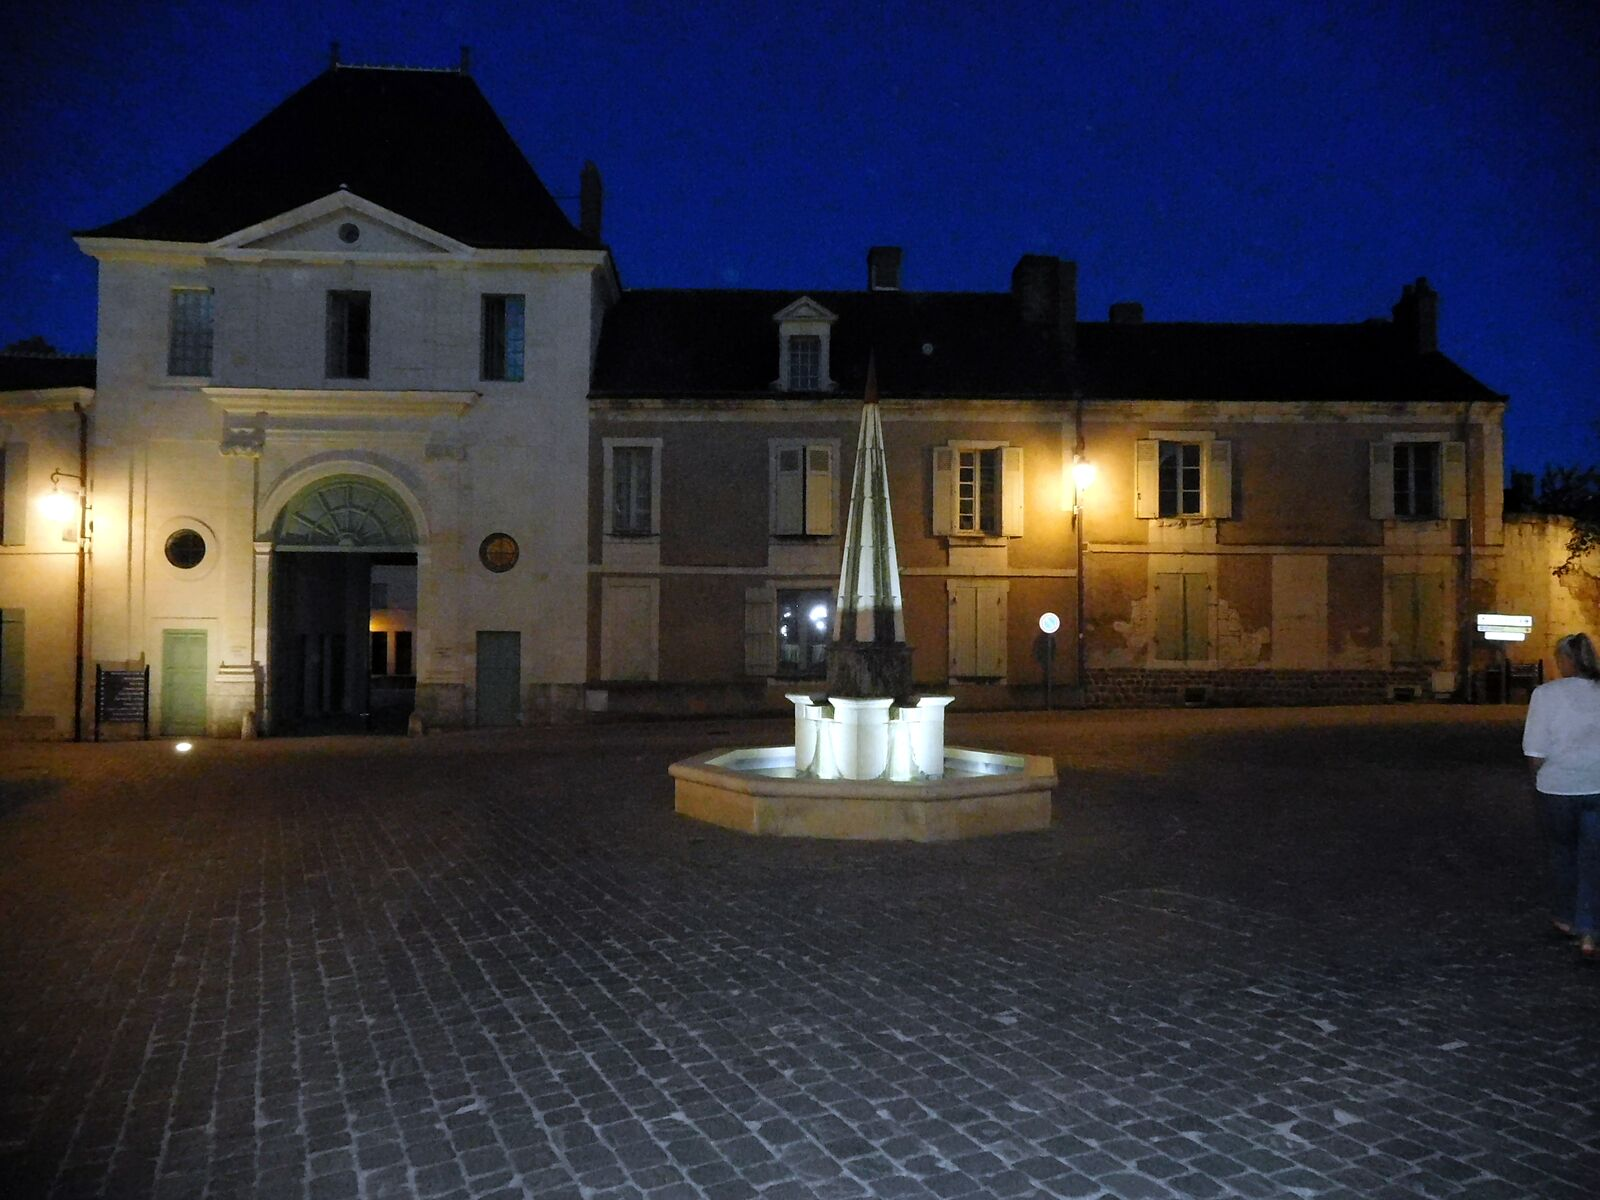 villagesquareatnight